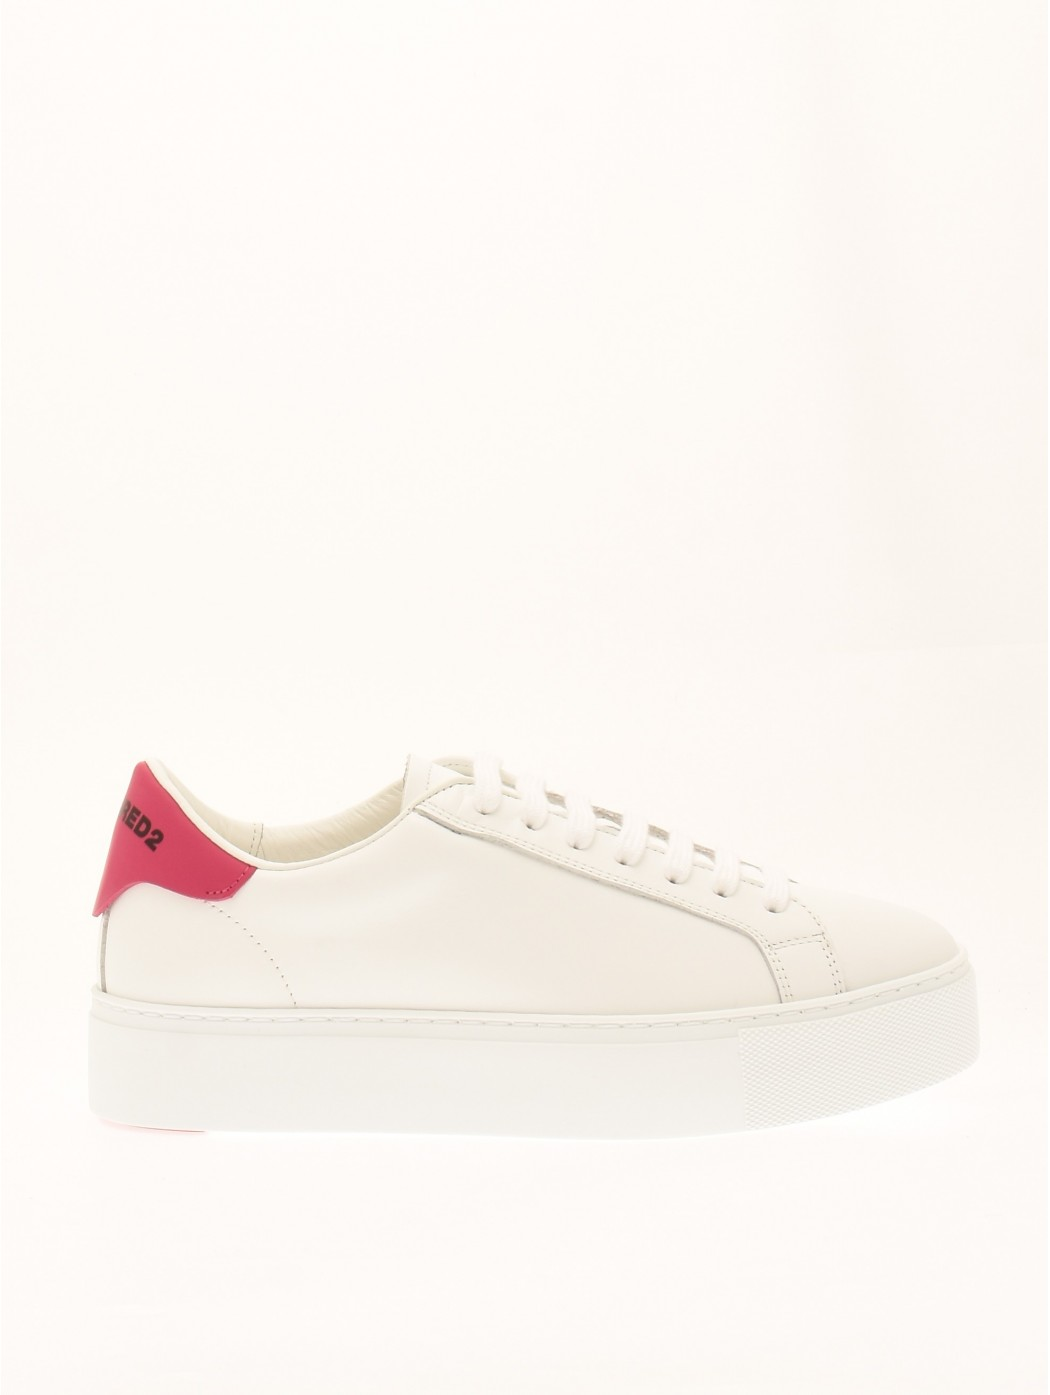 SNEAKER DSQUARED2 SNW000811570001 M1691